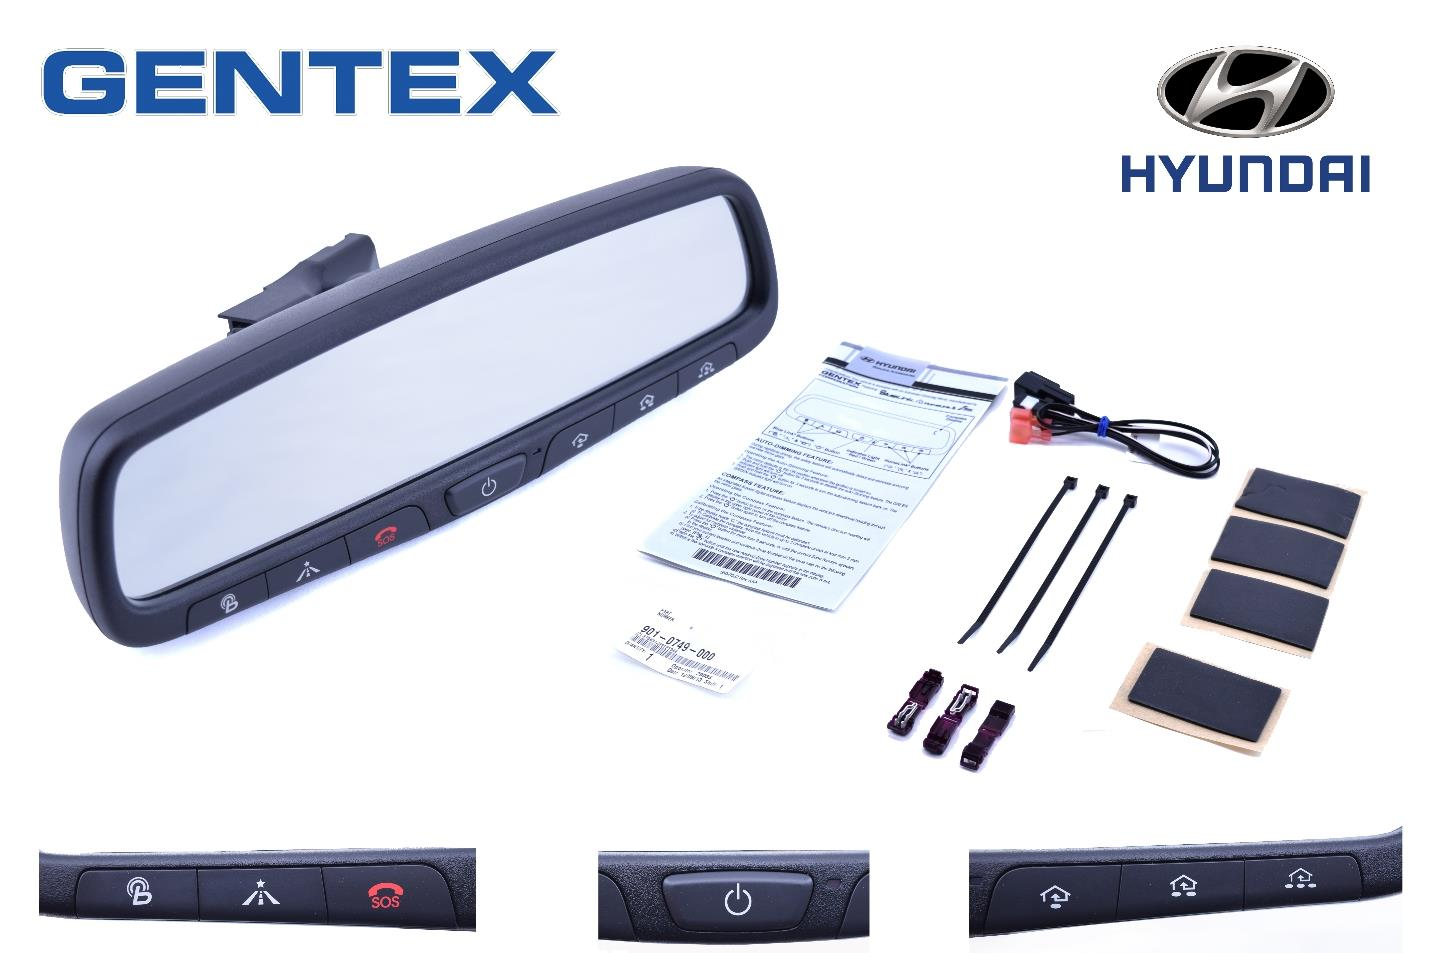 new hyundai gentex rear view mirror bluelink home link install kit 3q062 adup0 ebay. Black Bedroom Furniture Sets. Home Design Ideas